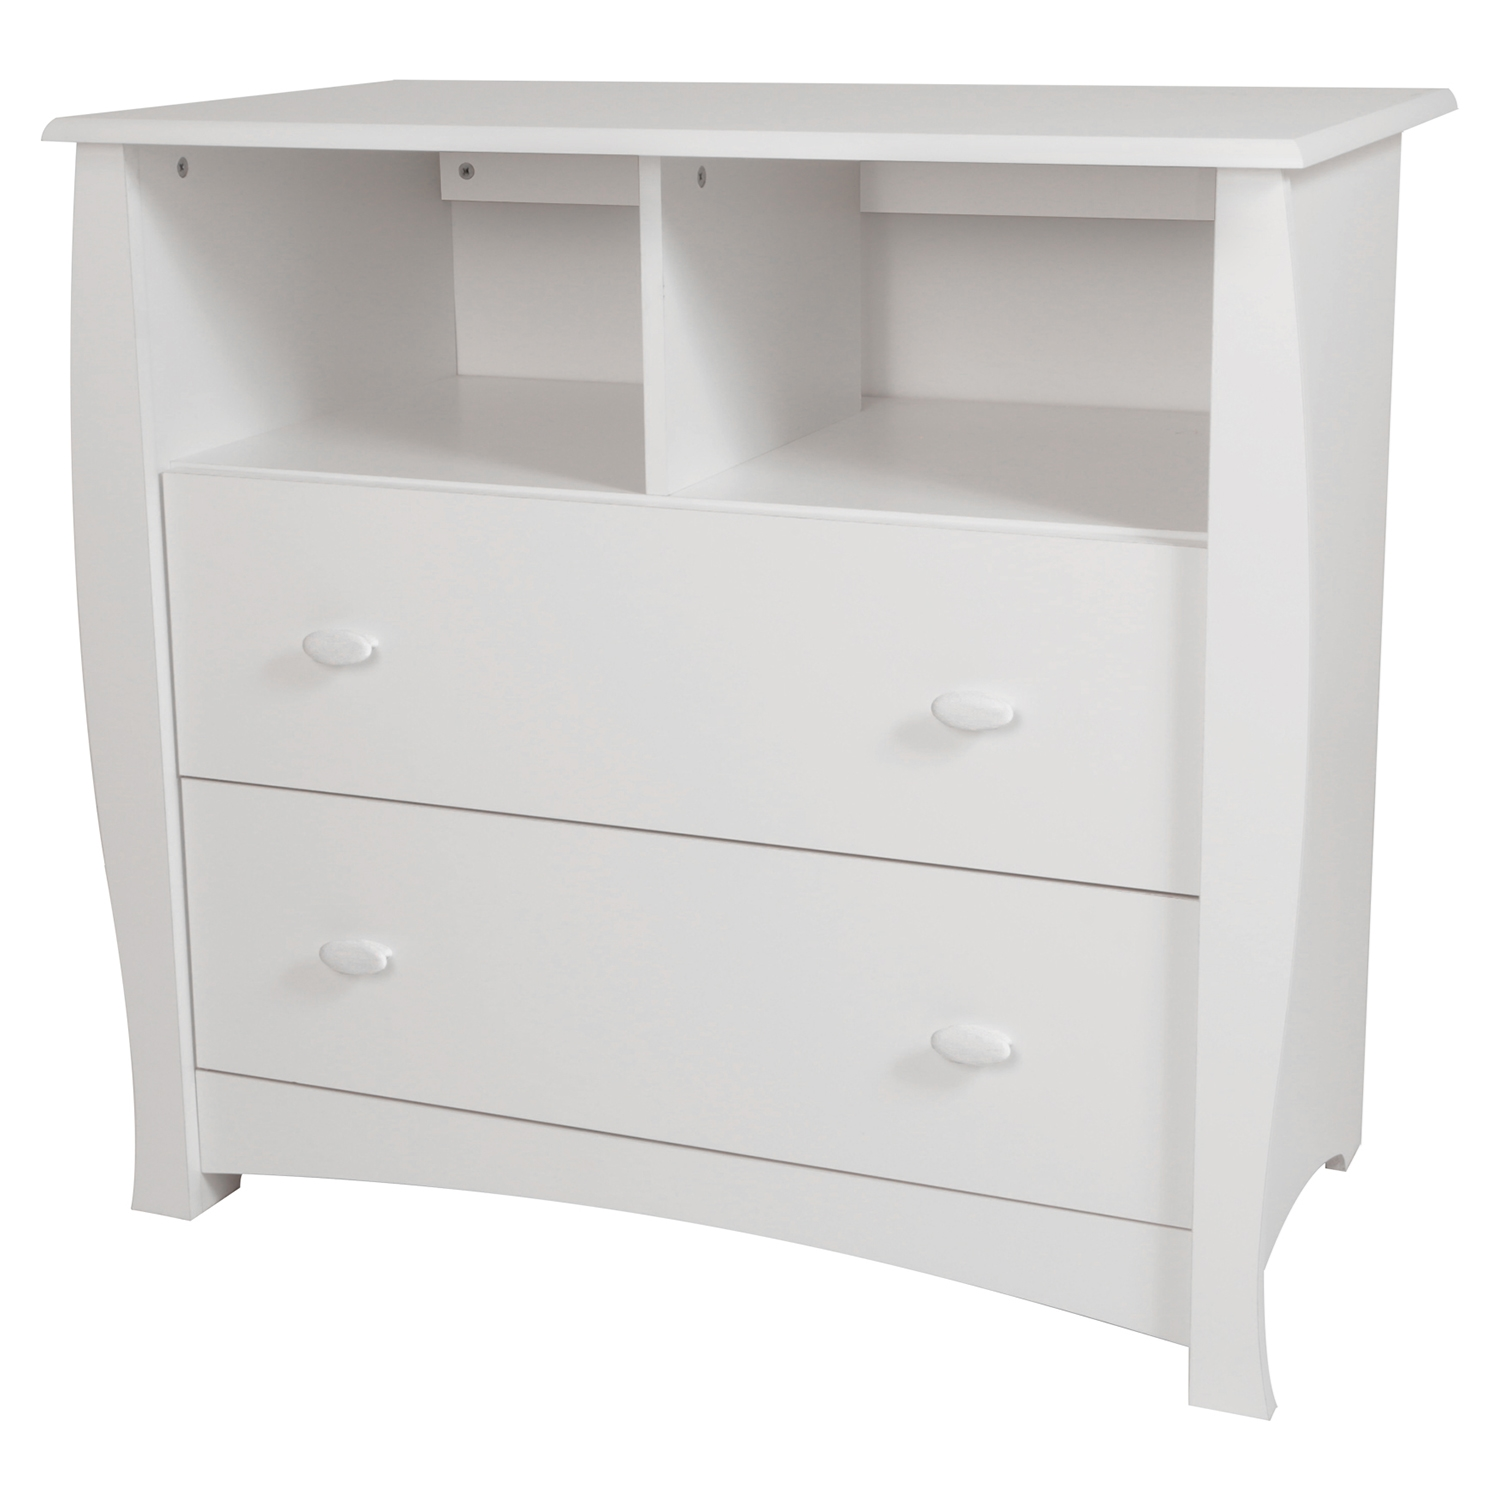 Beehive Changing Table and 4 Drawers Chest - Removable Station, Pure White - SS-3640A2